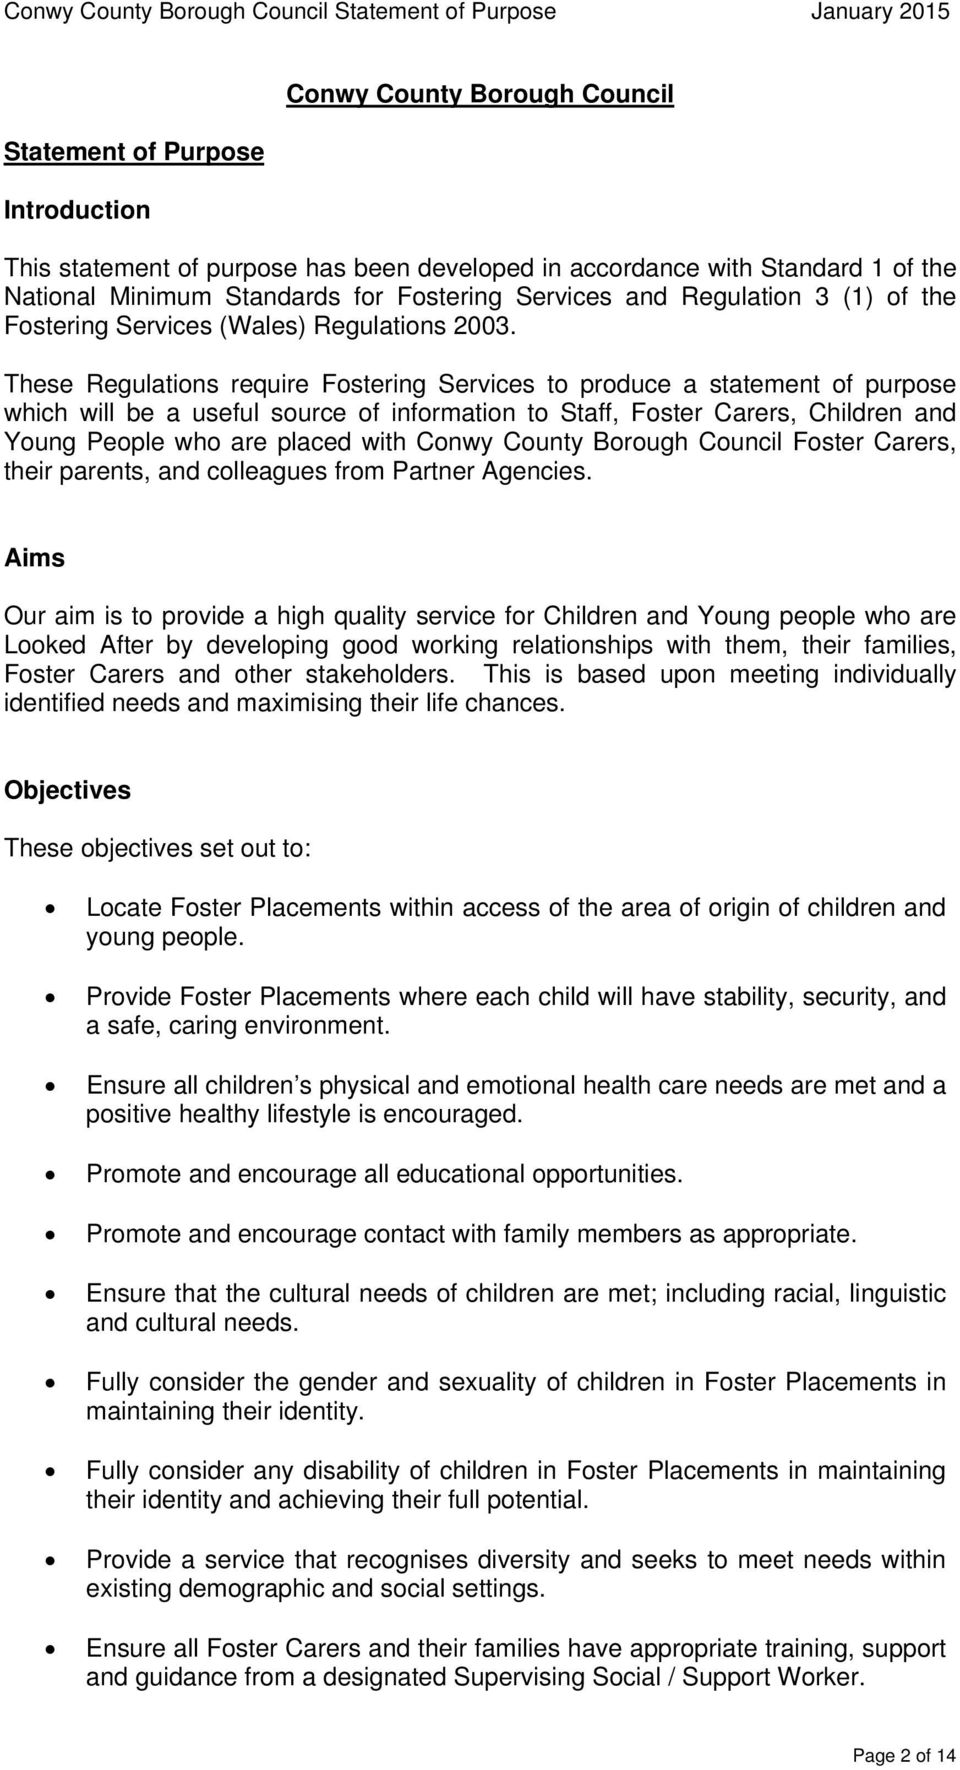 These Regulations require Fostering Services to produce a statement of purpose which will be a useful source of information to Staff, Foster Carers, Children and Young People who are placed with